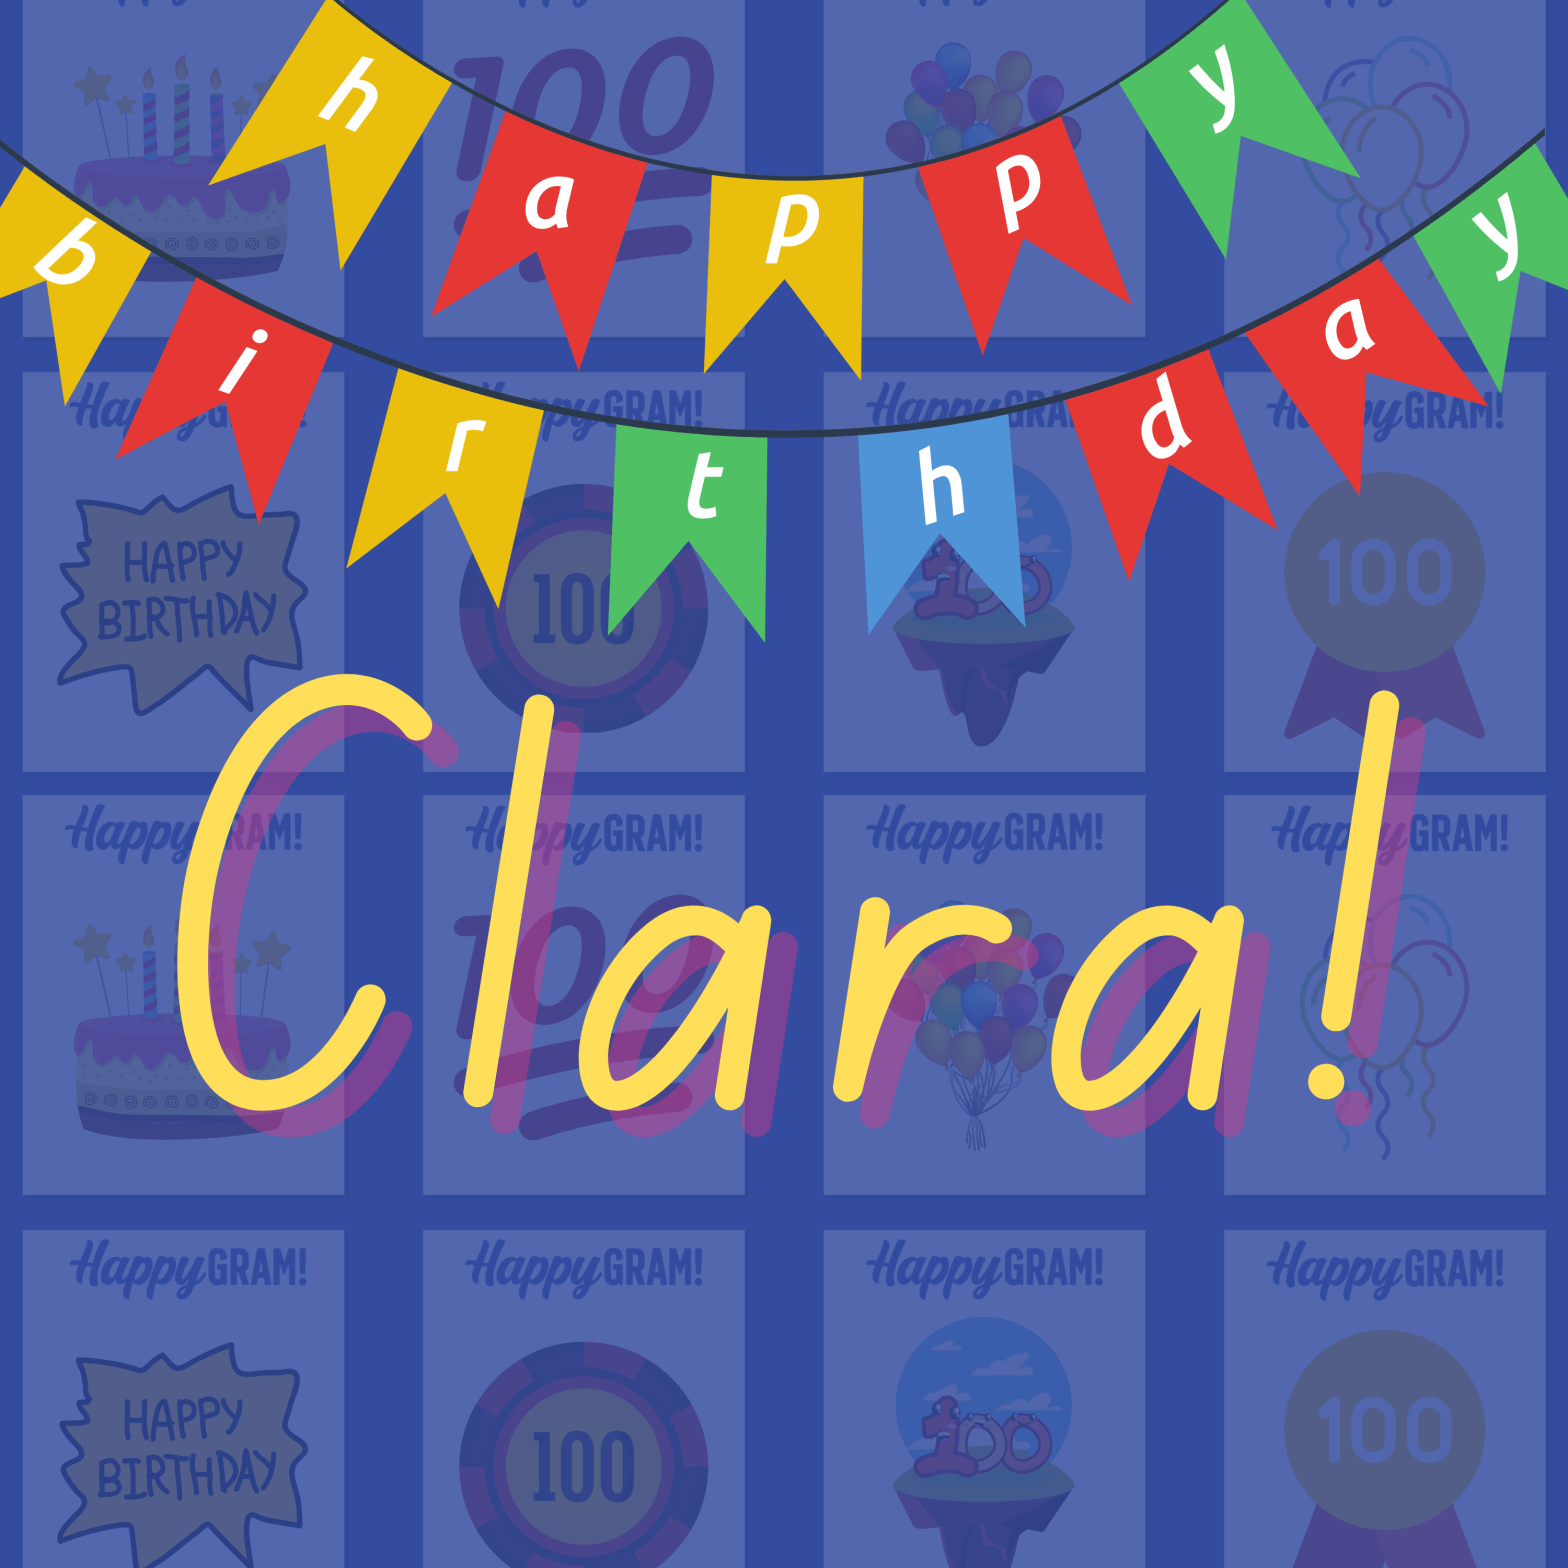 Happy Birthday Clara!